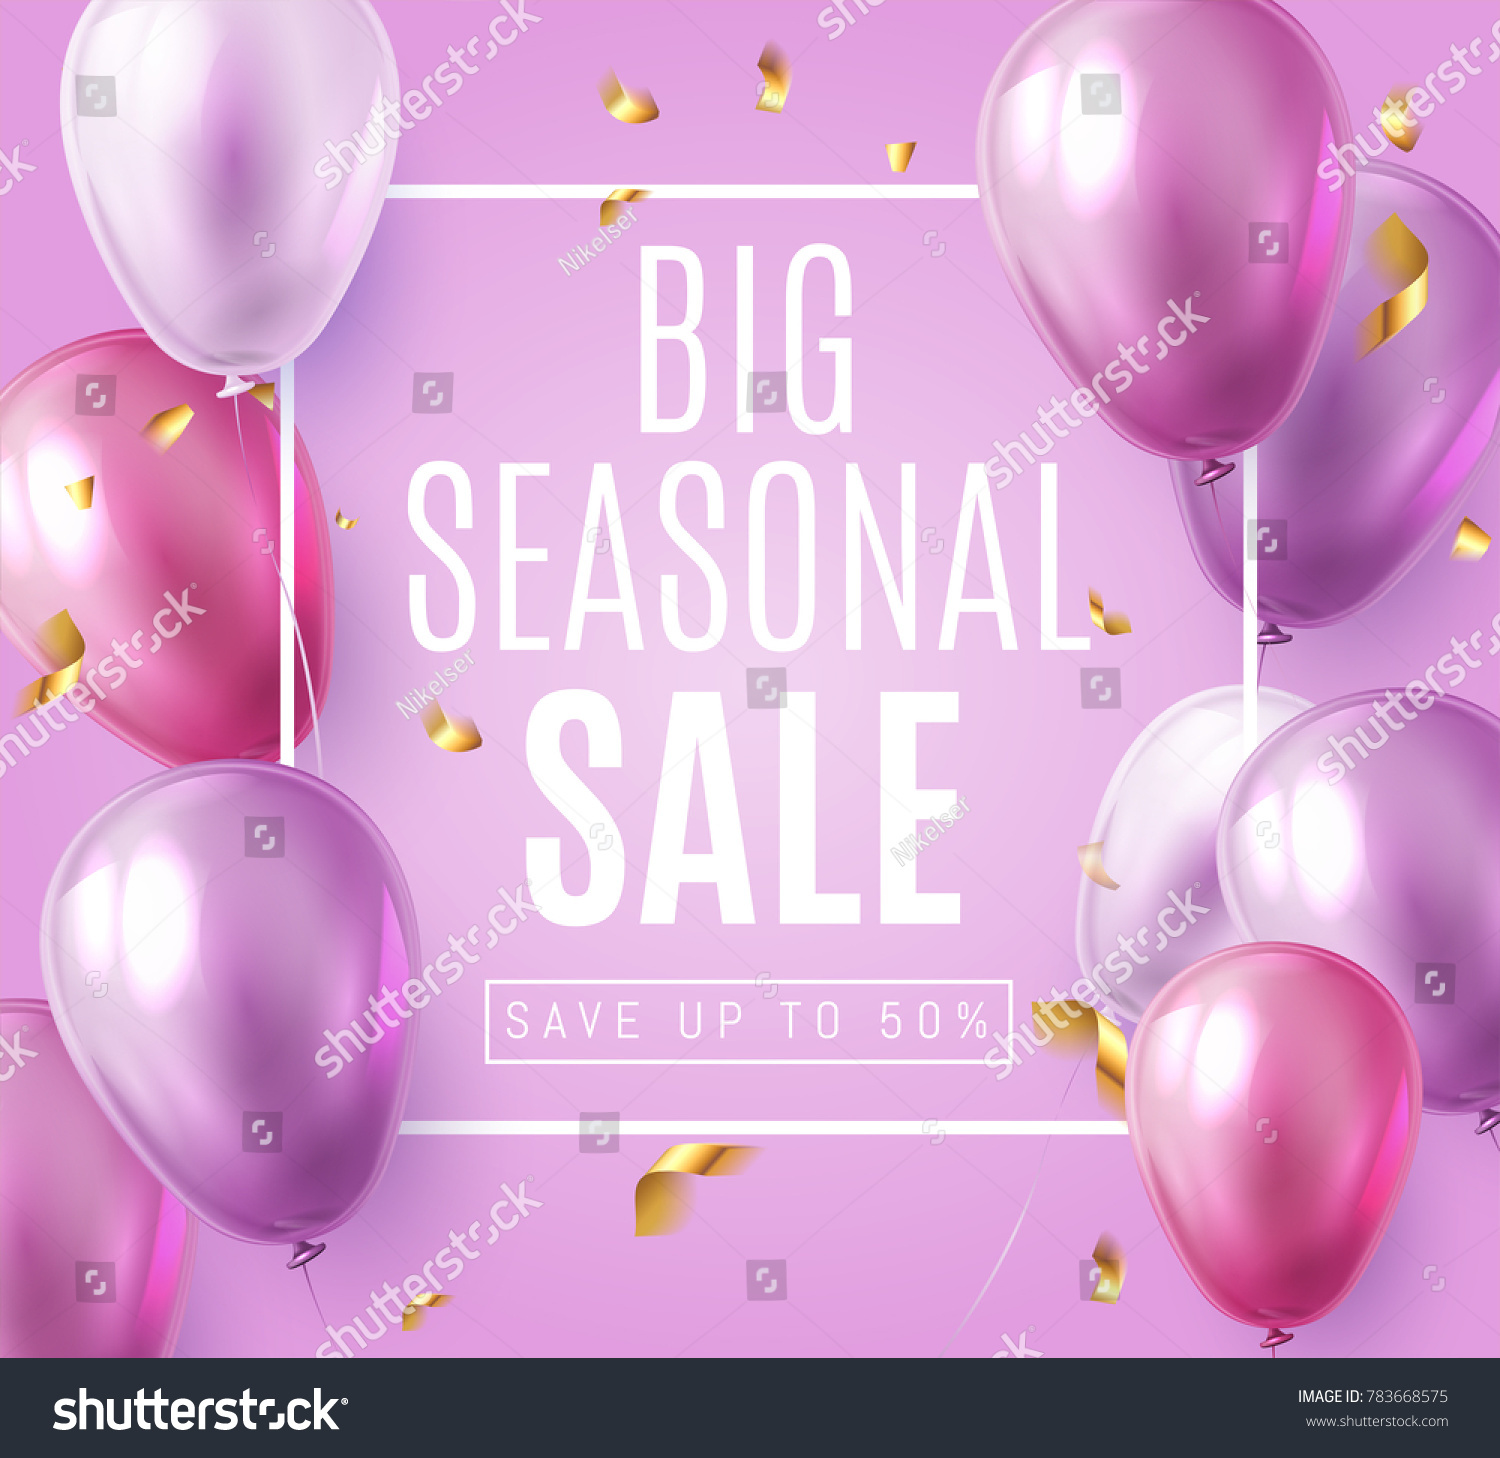 Big Seasonal Final Sale Text Special Stock Vector 783668575